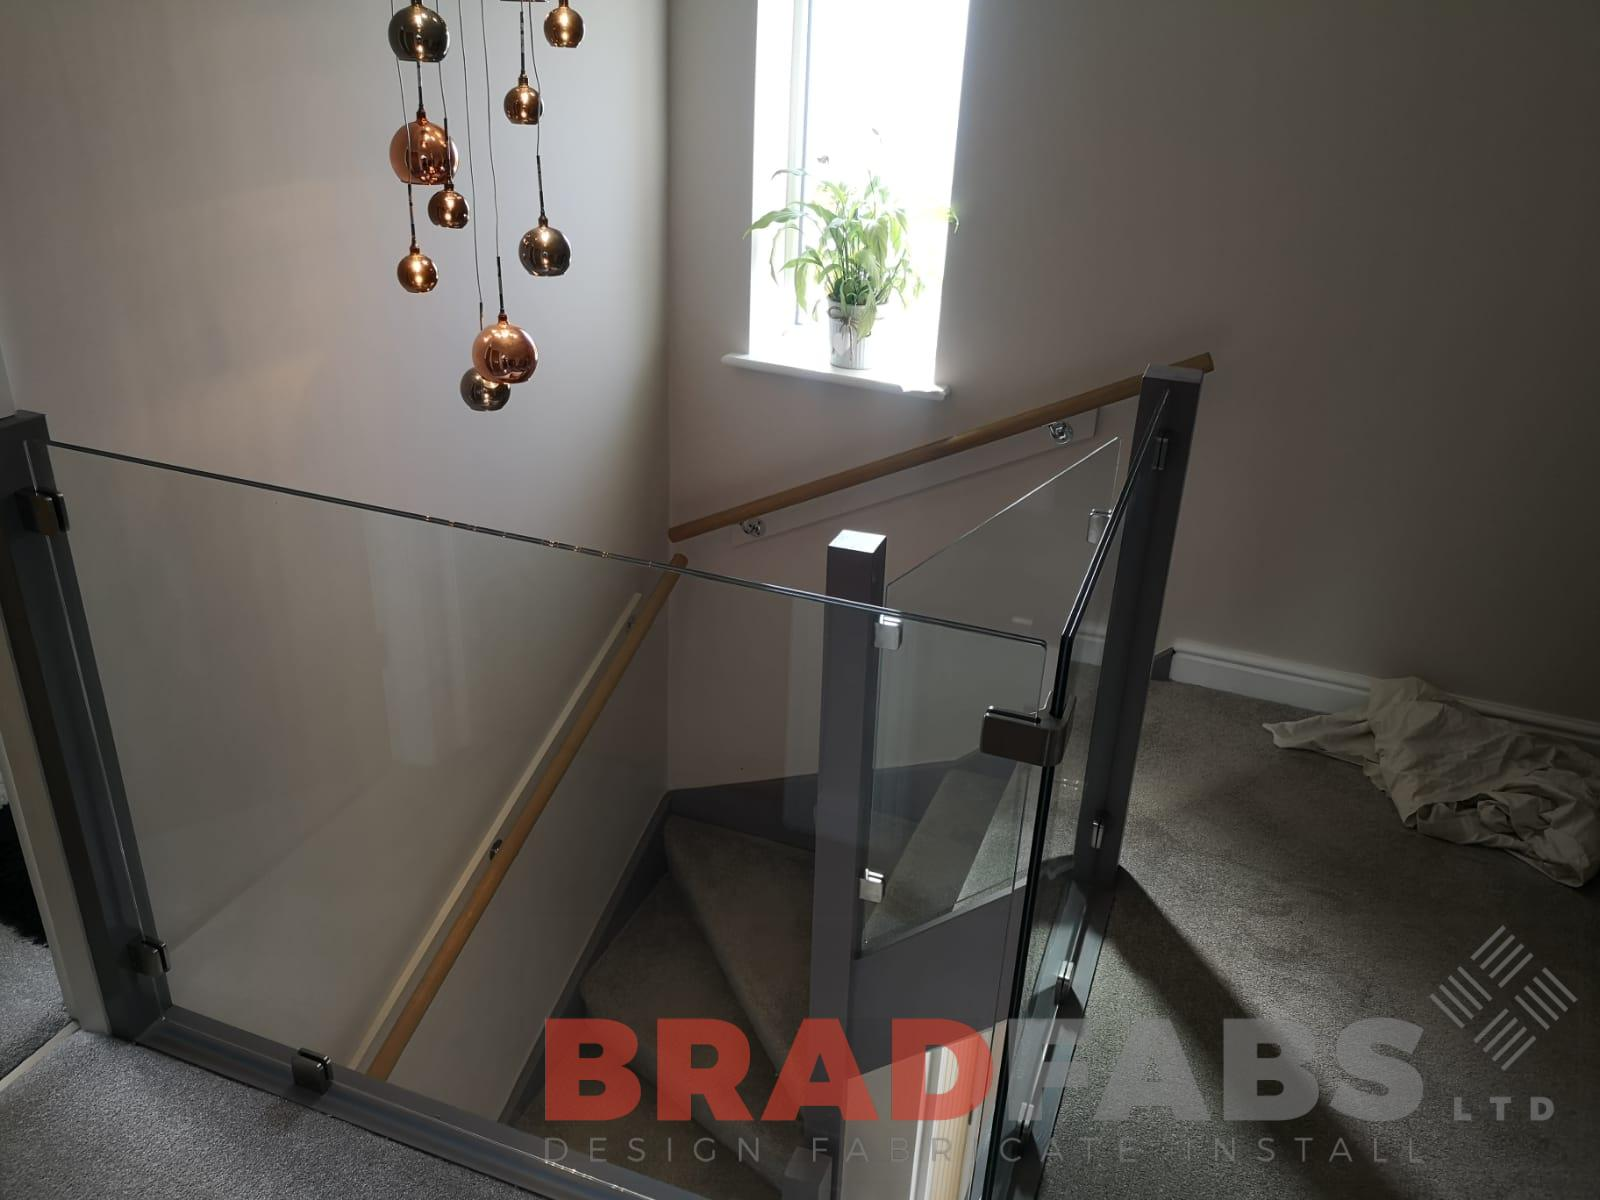 12mm toughened laminated safety infinity glass balustrade by Bradfabs